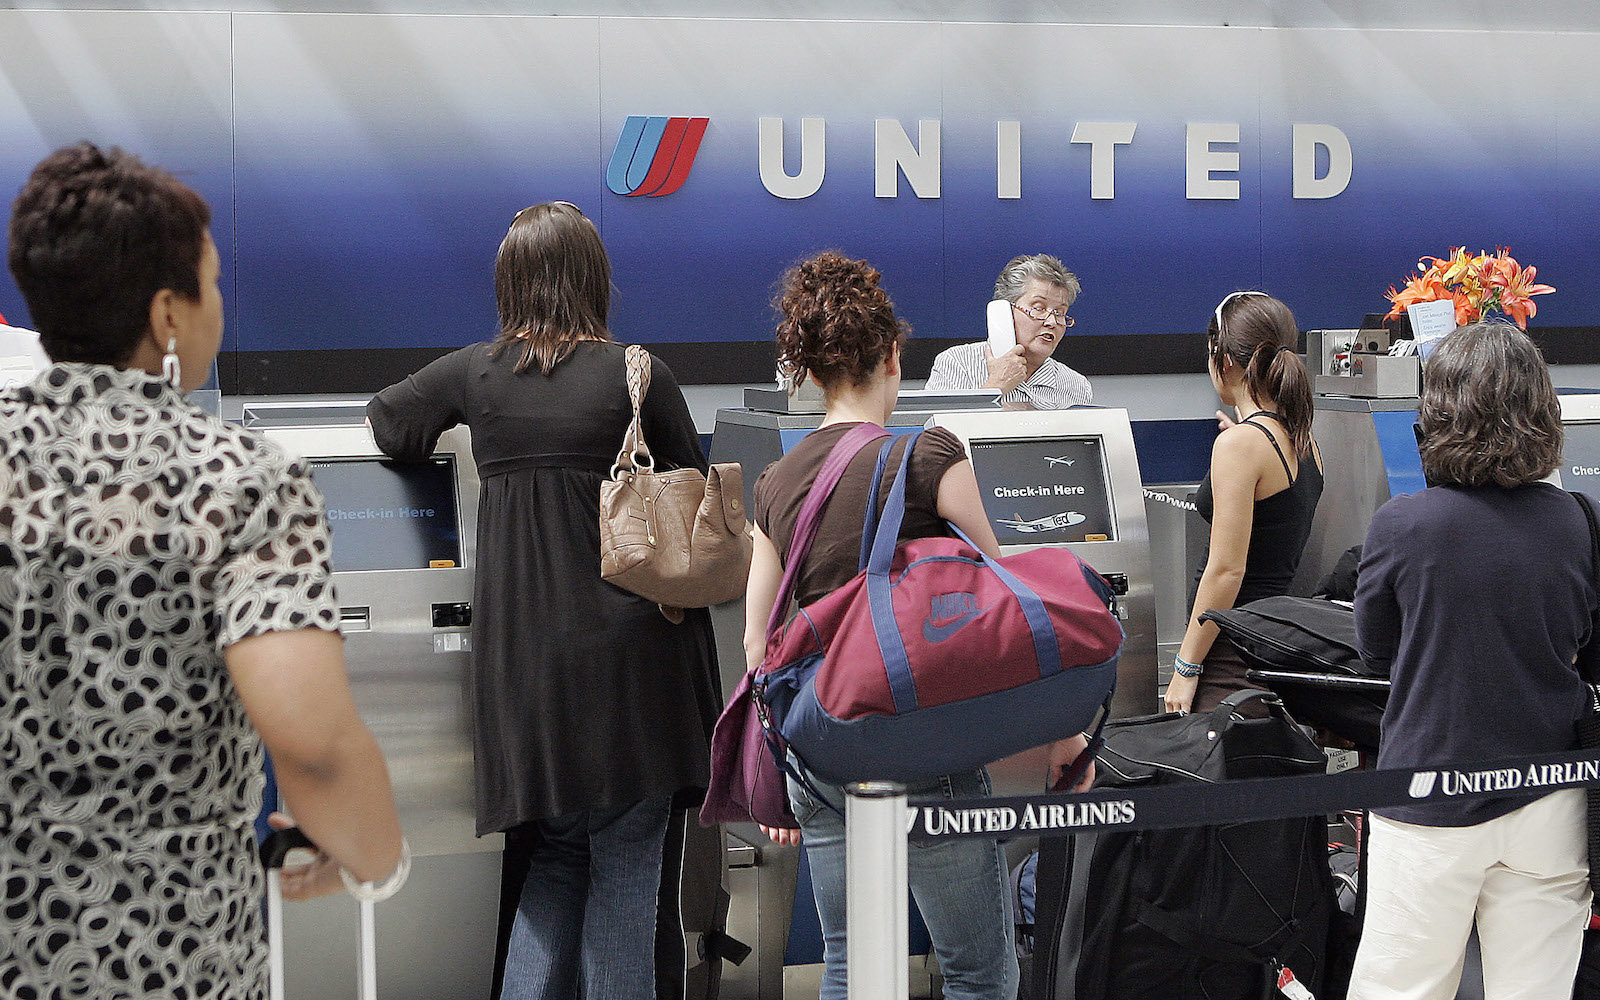 Passengers wait in line for a ticket agent inside the United Airlines terminal at O'Hare International Airport Chicago, Illinois Wednesday June 20, 2007. Photographer:Frank Polich/Bloomberg News